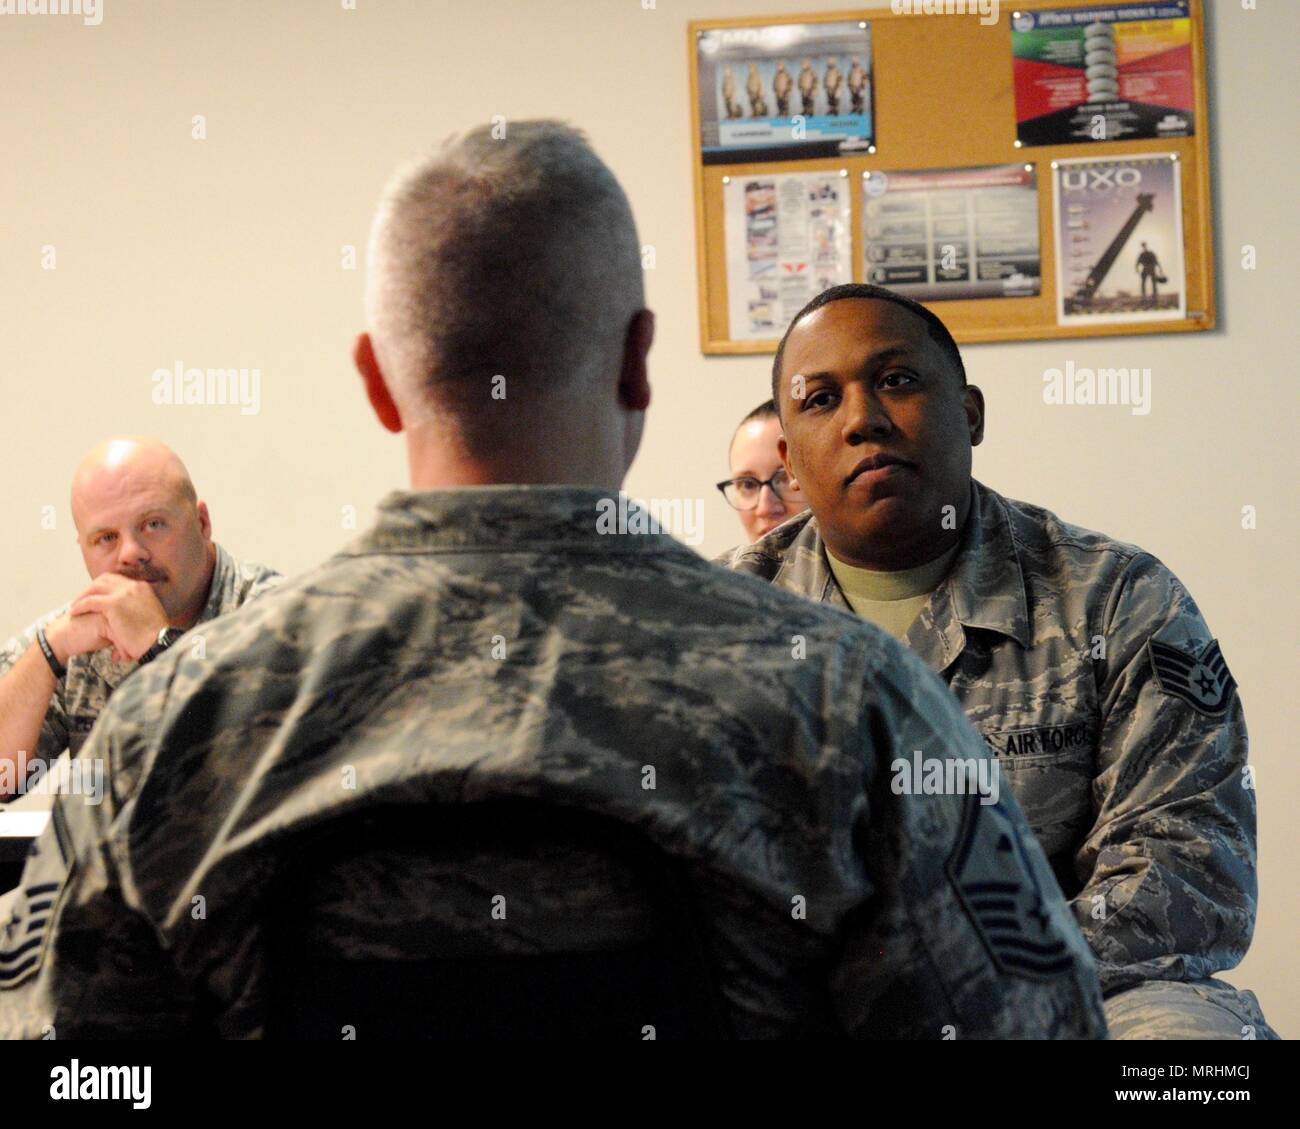 Counseling Sessions Stockfotos & Counseling Sessions Bilder - Alamy